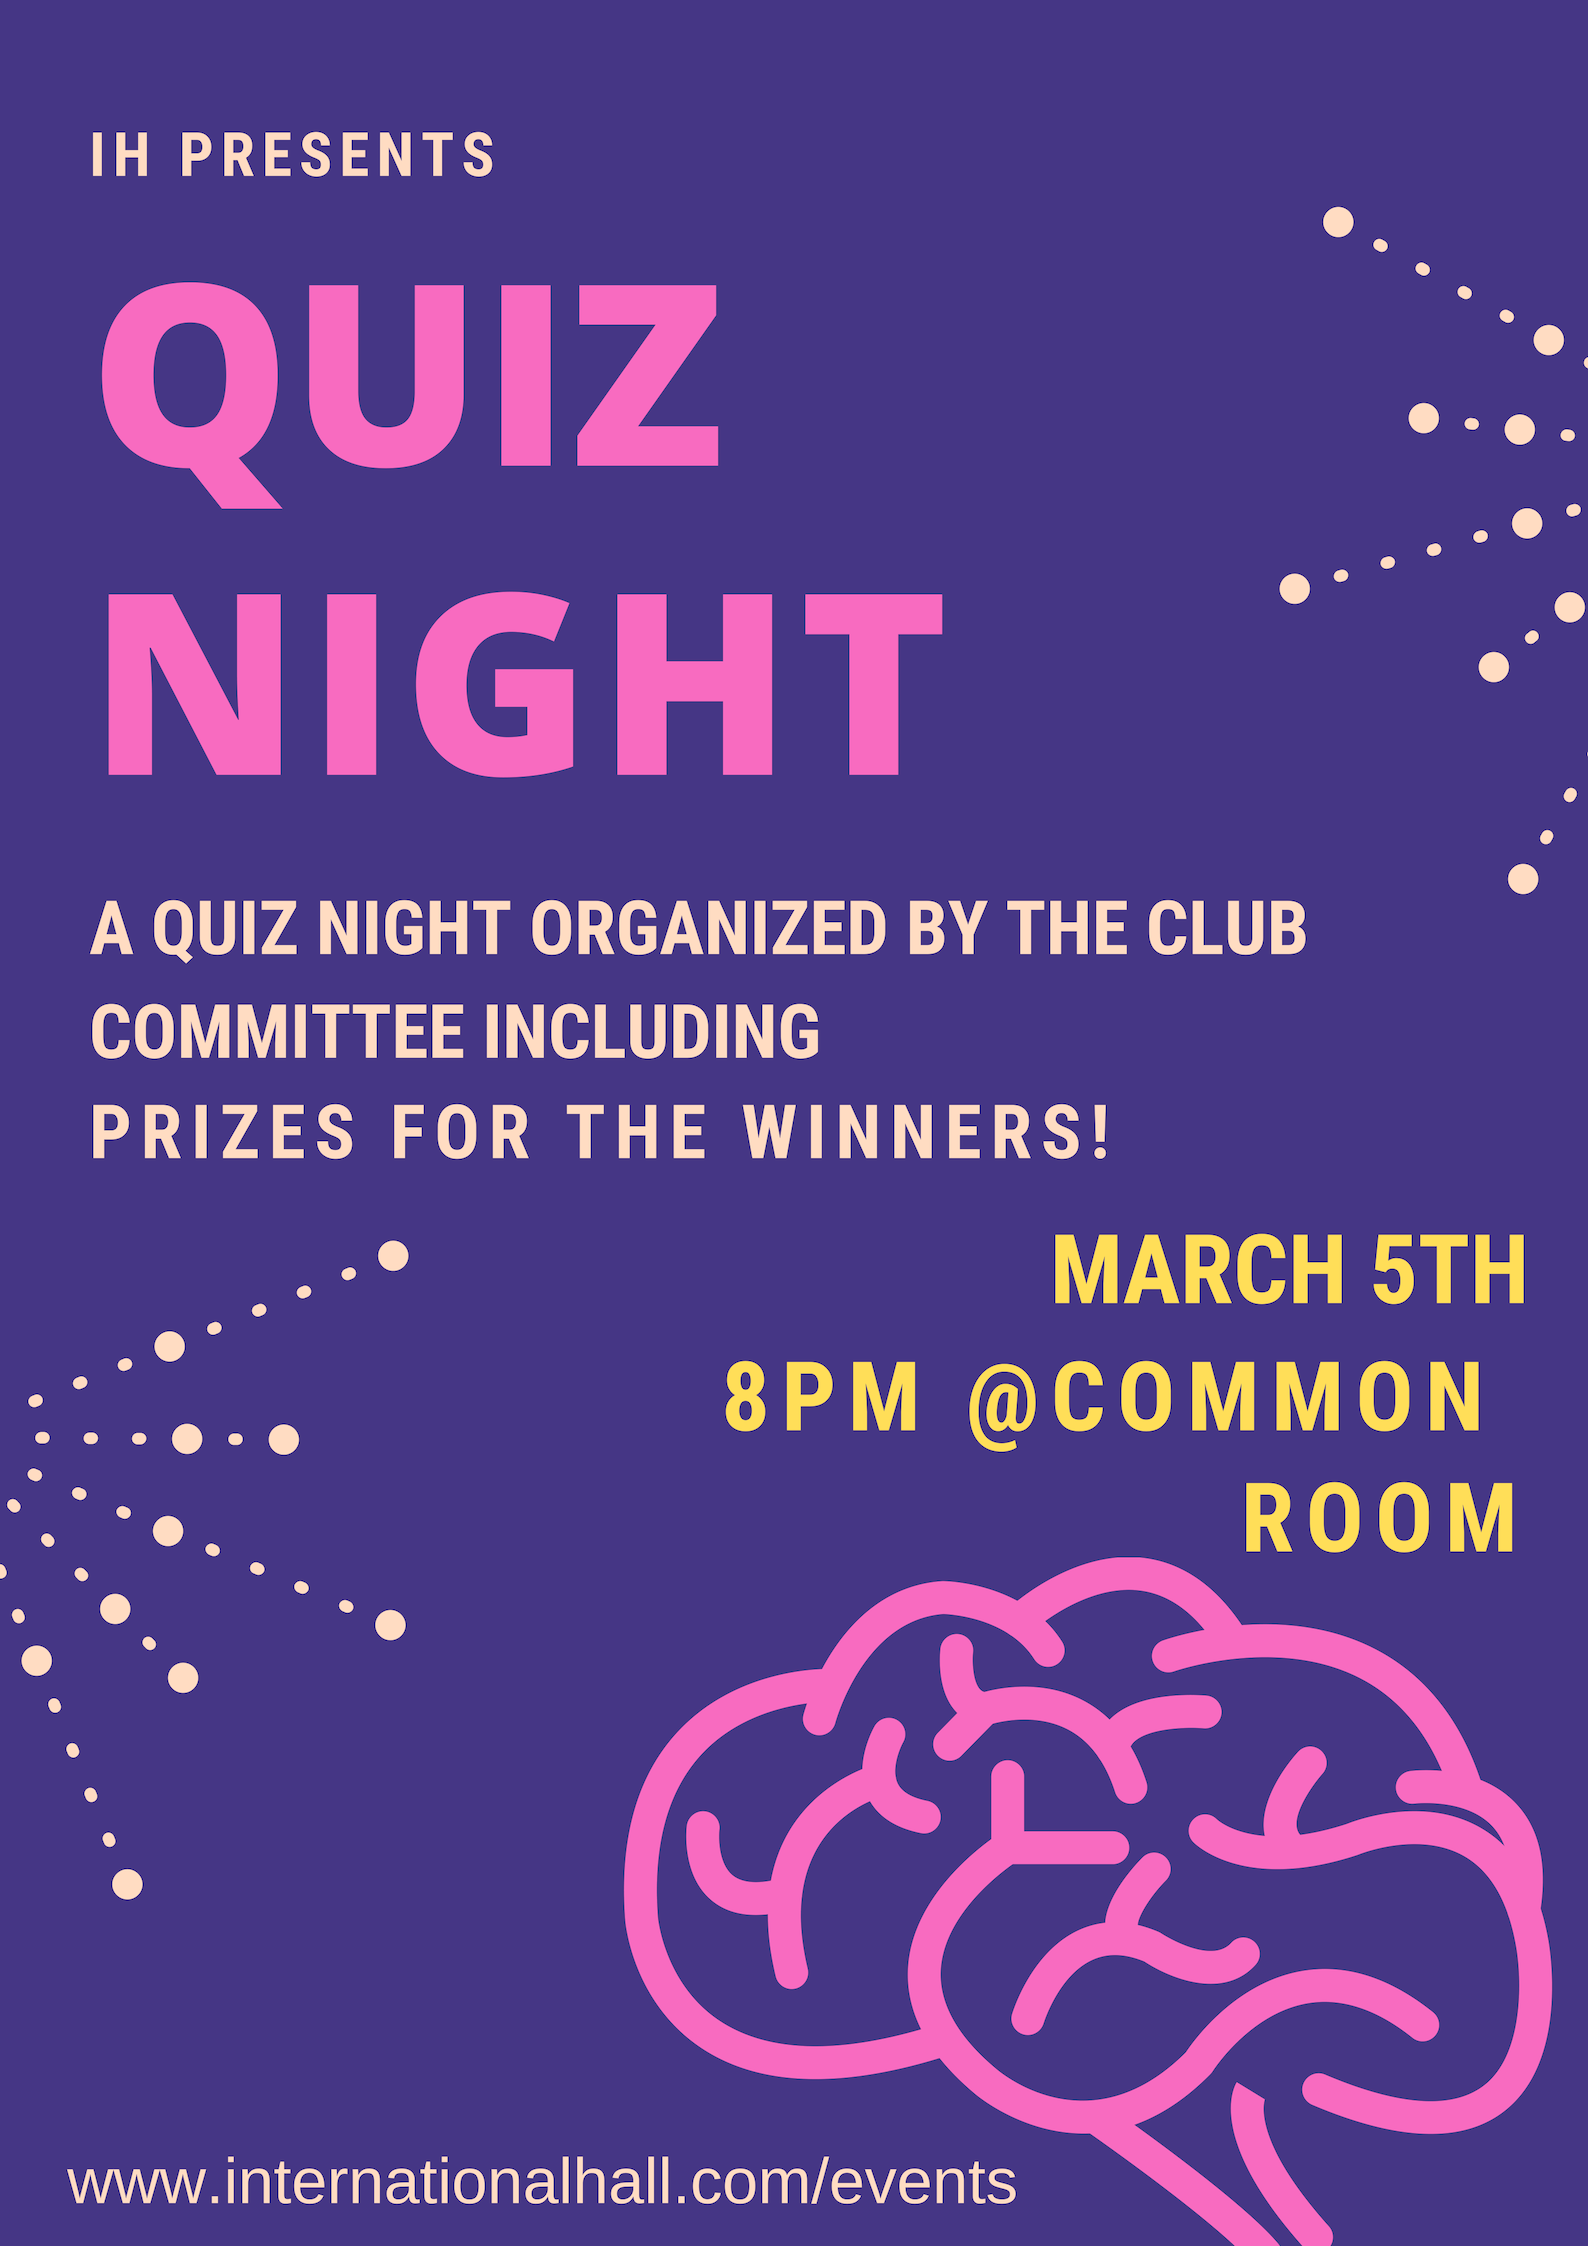 ih quiz night.png